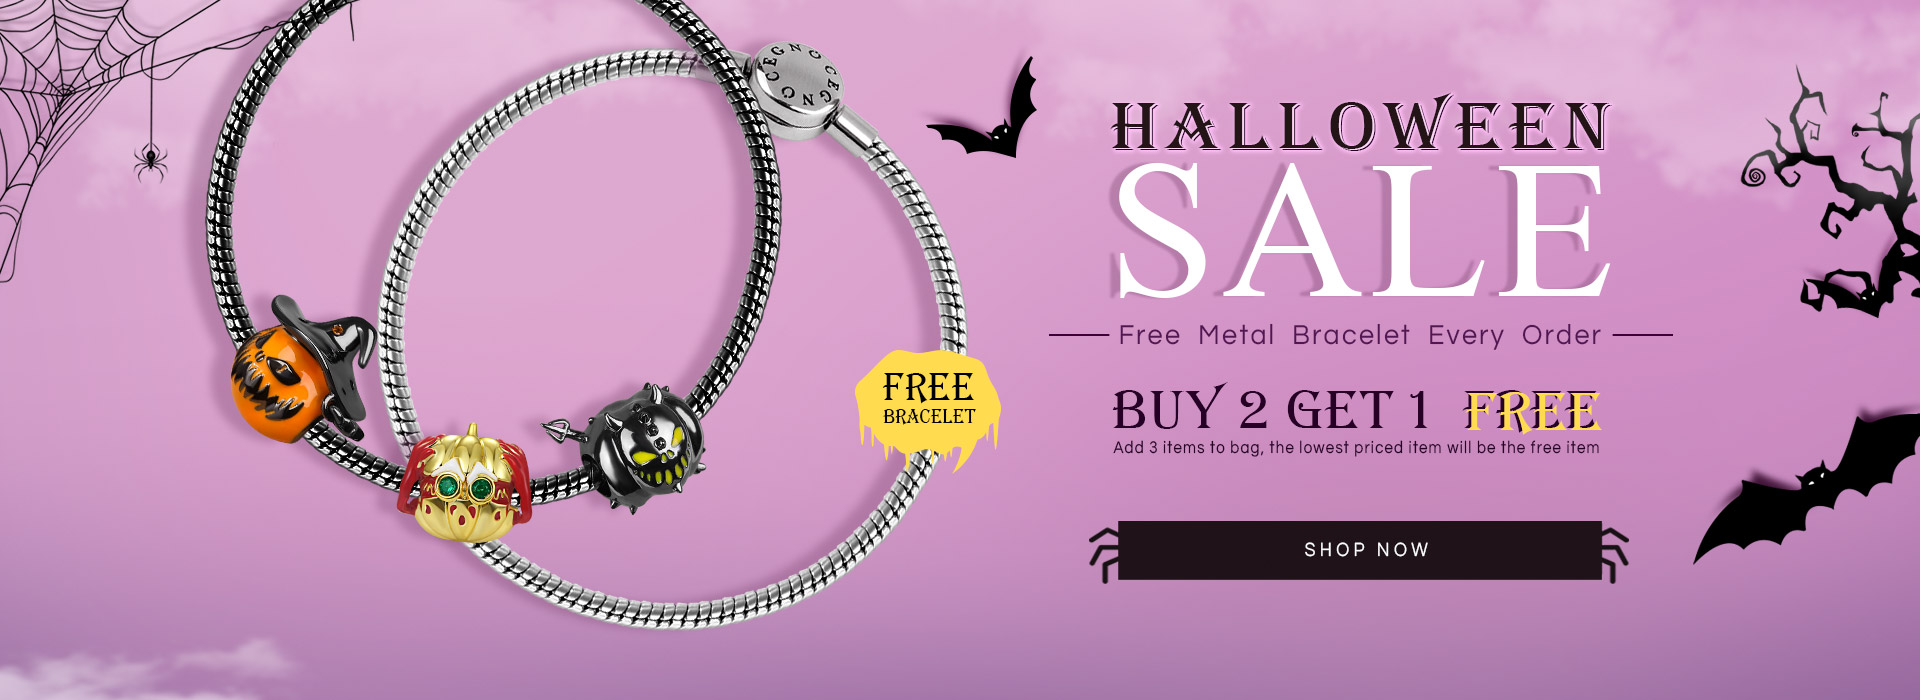 Halloween 2020: The Best Spooky Jewelry Gifts are now on Sale on Gnoce.com